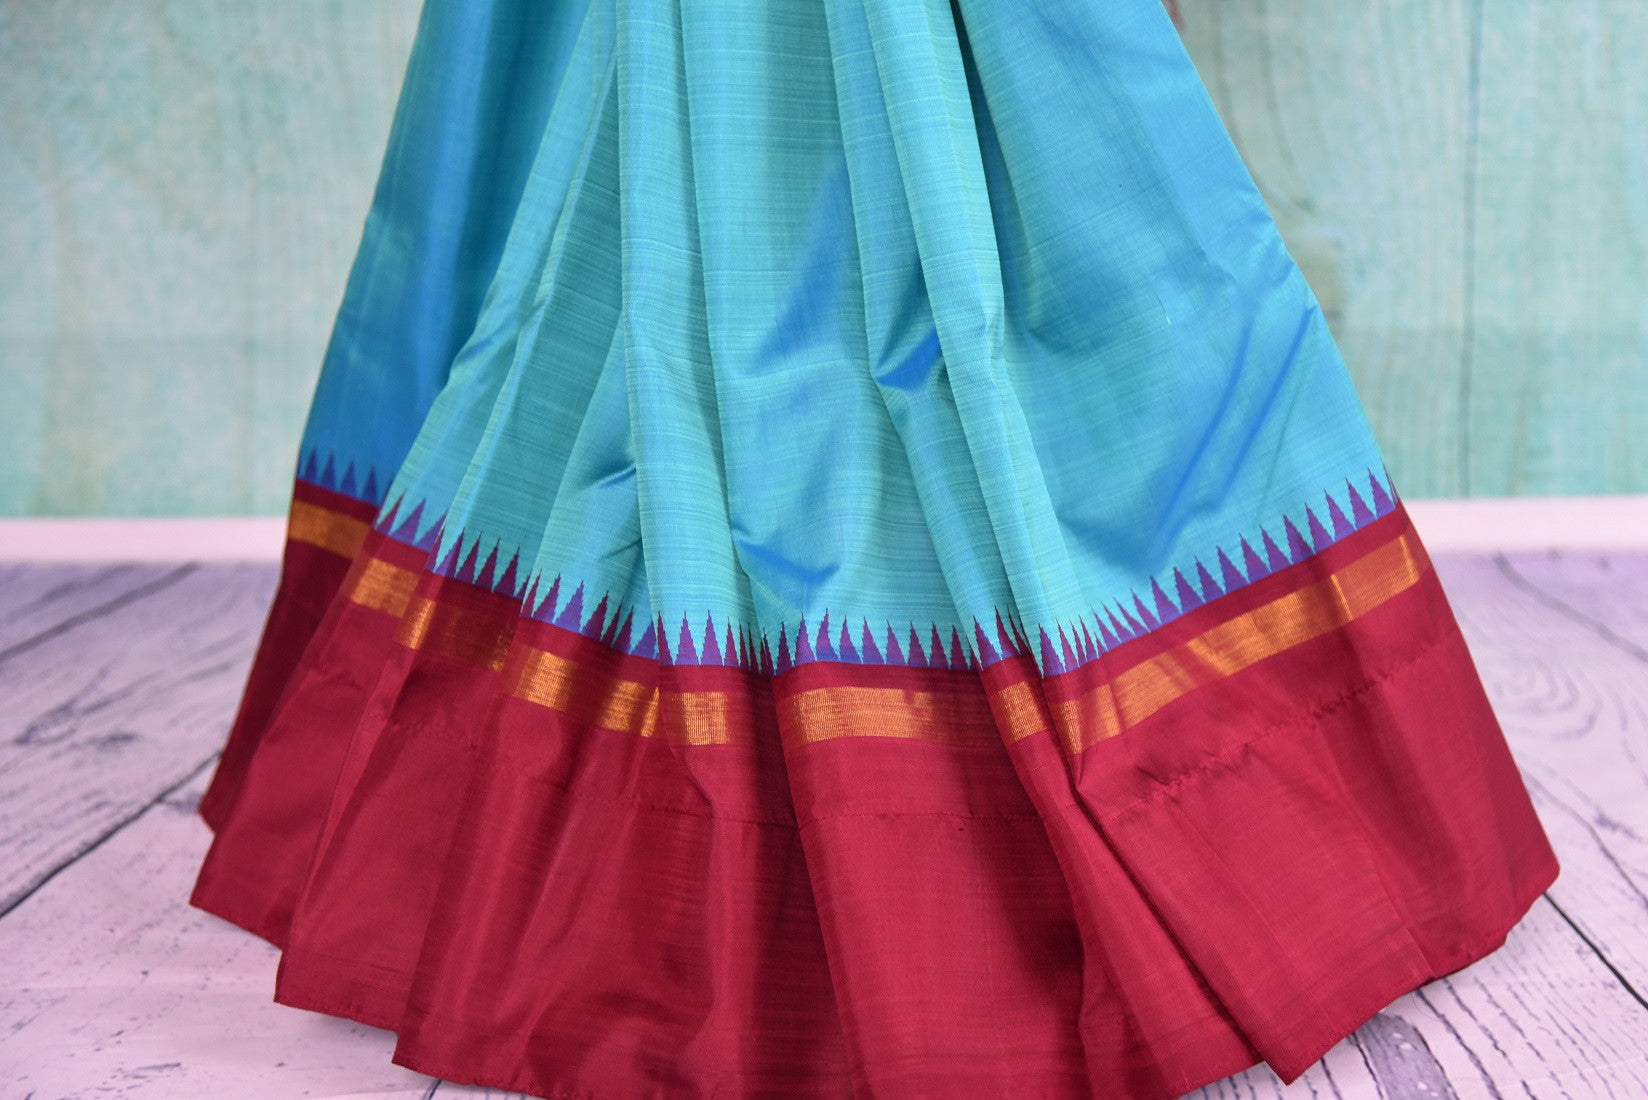 Buy this traditional Indian red and blue kanjivaram saree perfect for any wedding, reception, sangeet or engagement, puja and garba online or from our store in USA. Close up.